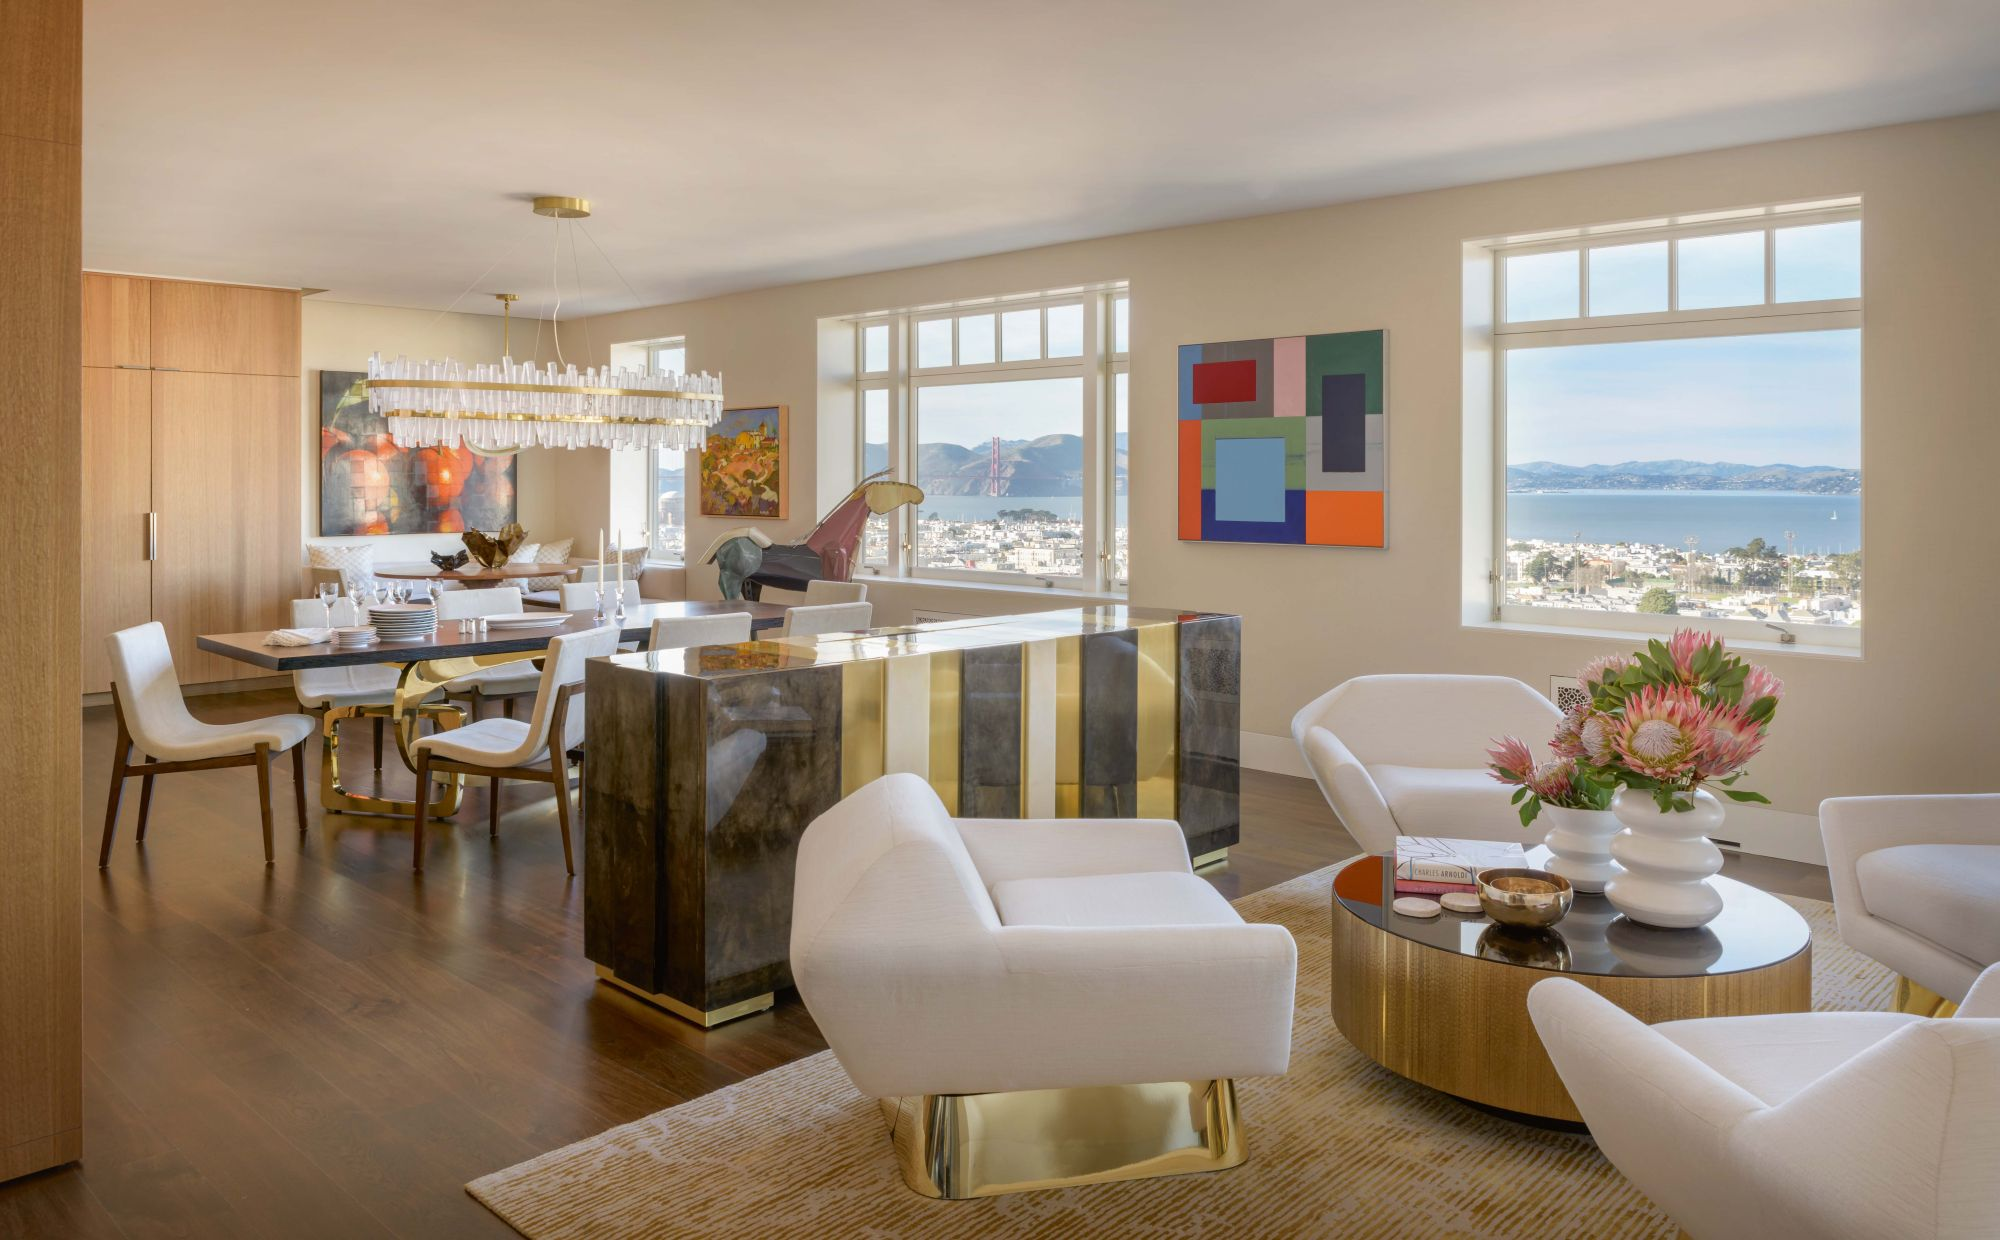 Home Tour: An Art-Filled Penthouse In San Francisco With Pink Accents